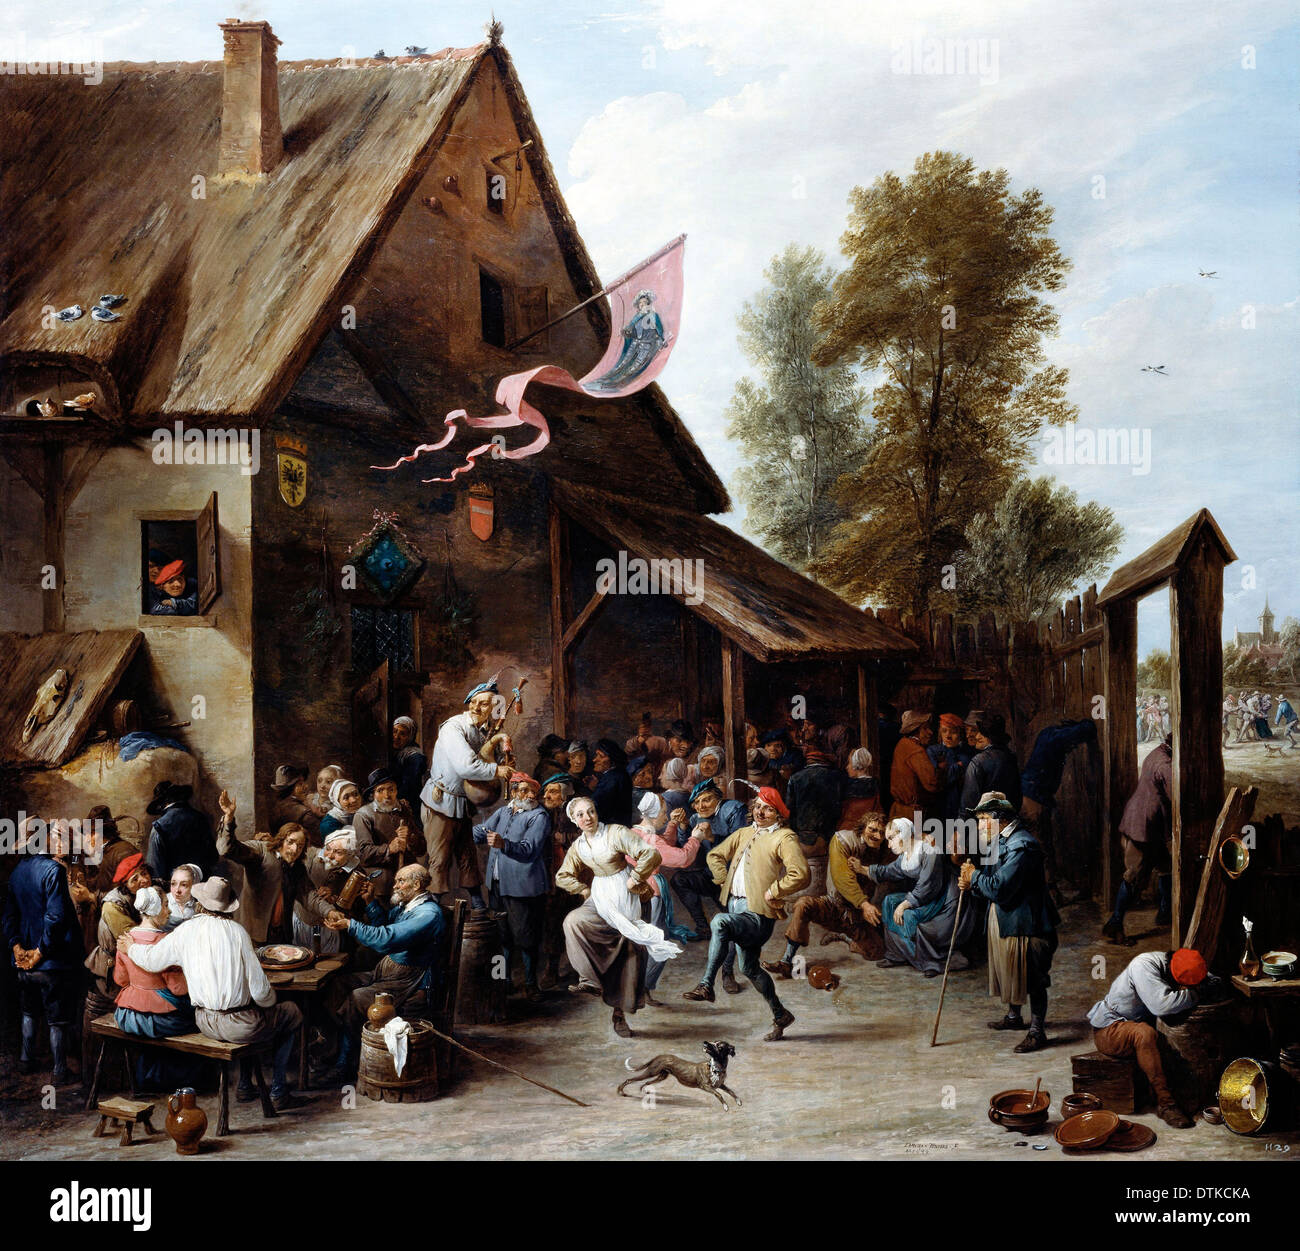 David Teniers the Younger, Kermis on St George's Day 1664-1667 Oil on canvas. Royal Collection of the United Kingdom, England. - Stock Image